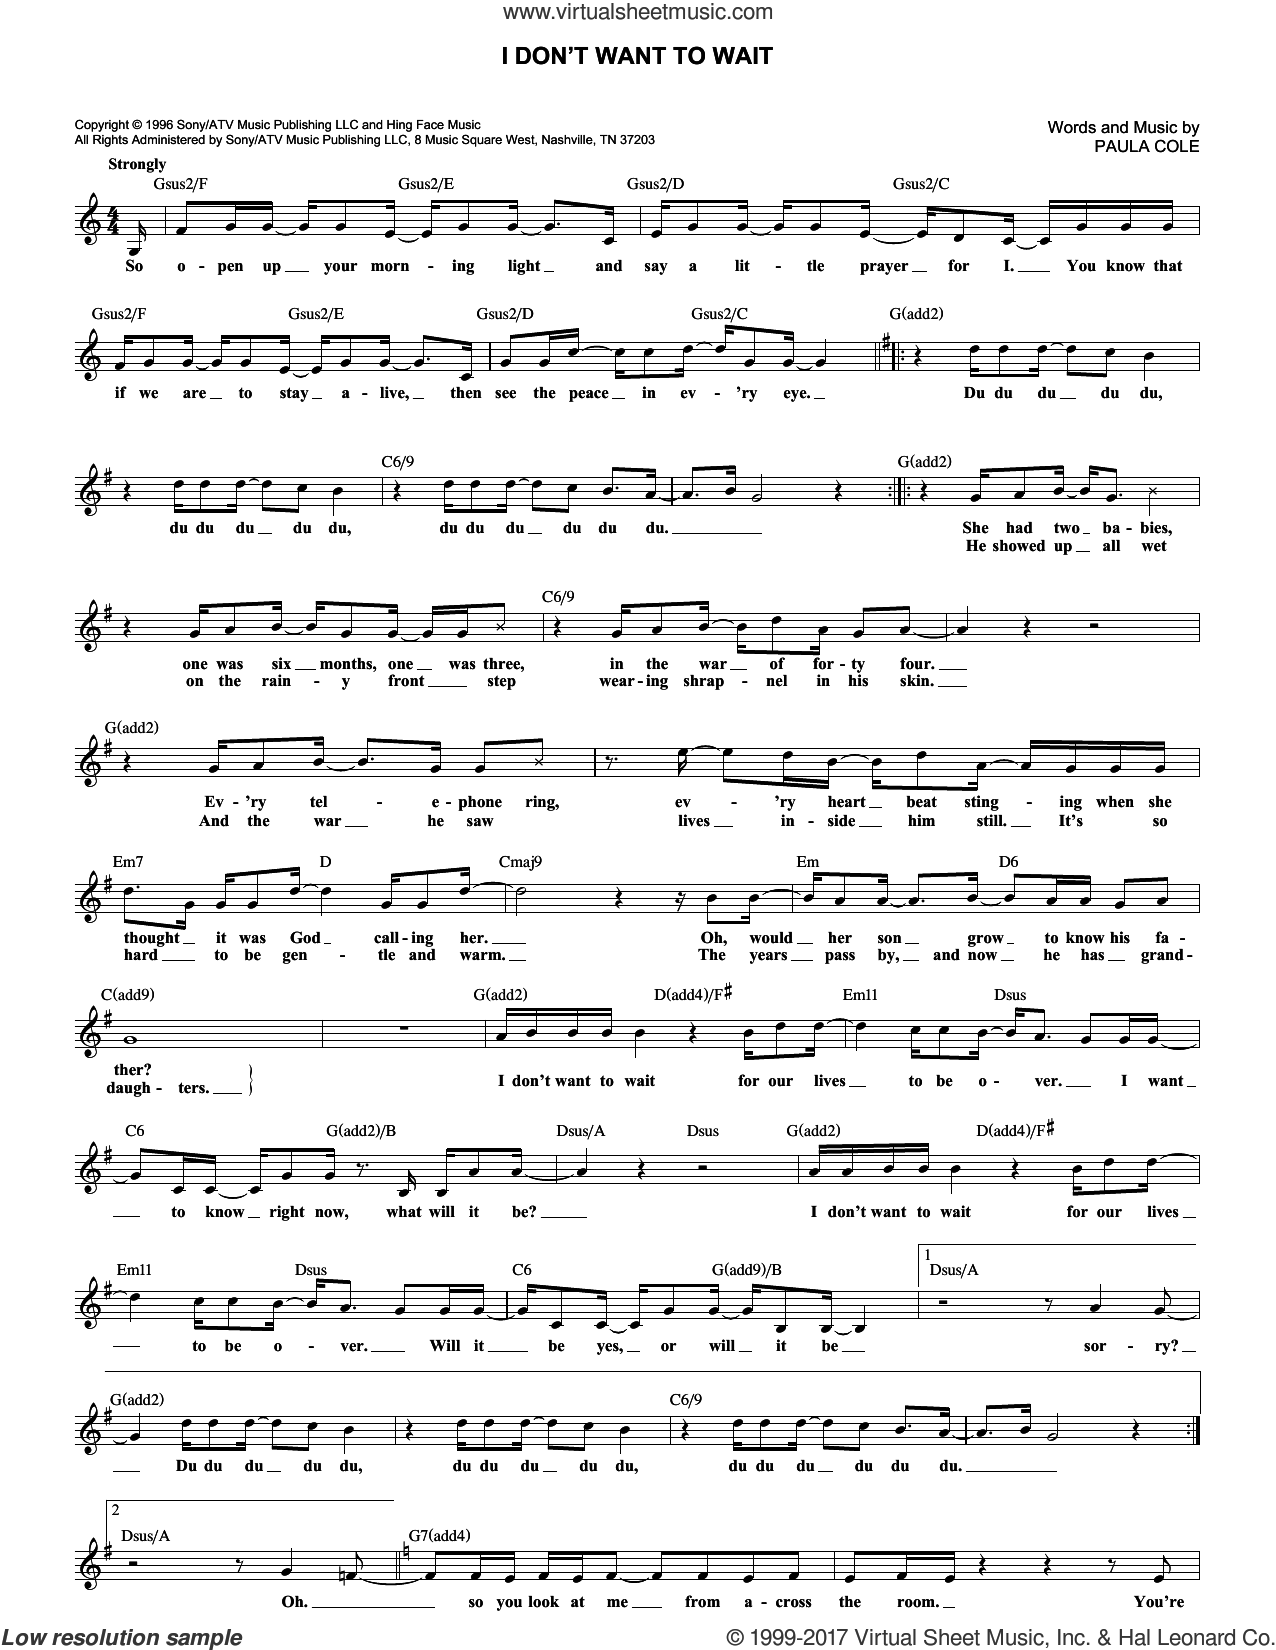 I Don't Want To Wait sheet music for voice and other instruments (fake book) by Paula Cole, intermediate skill level